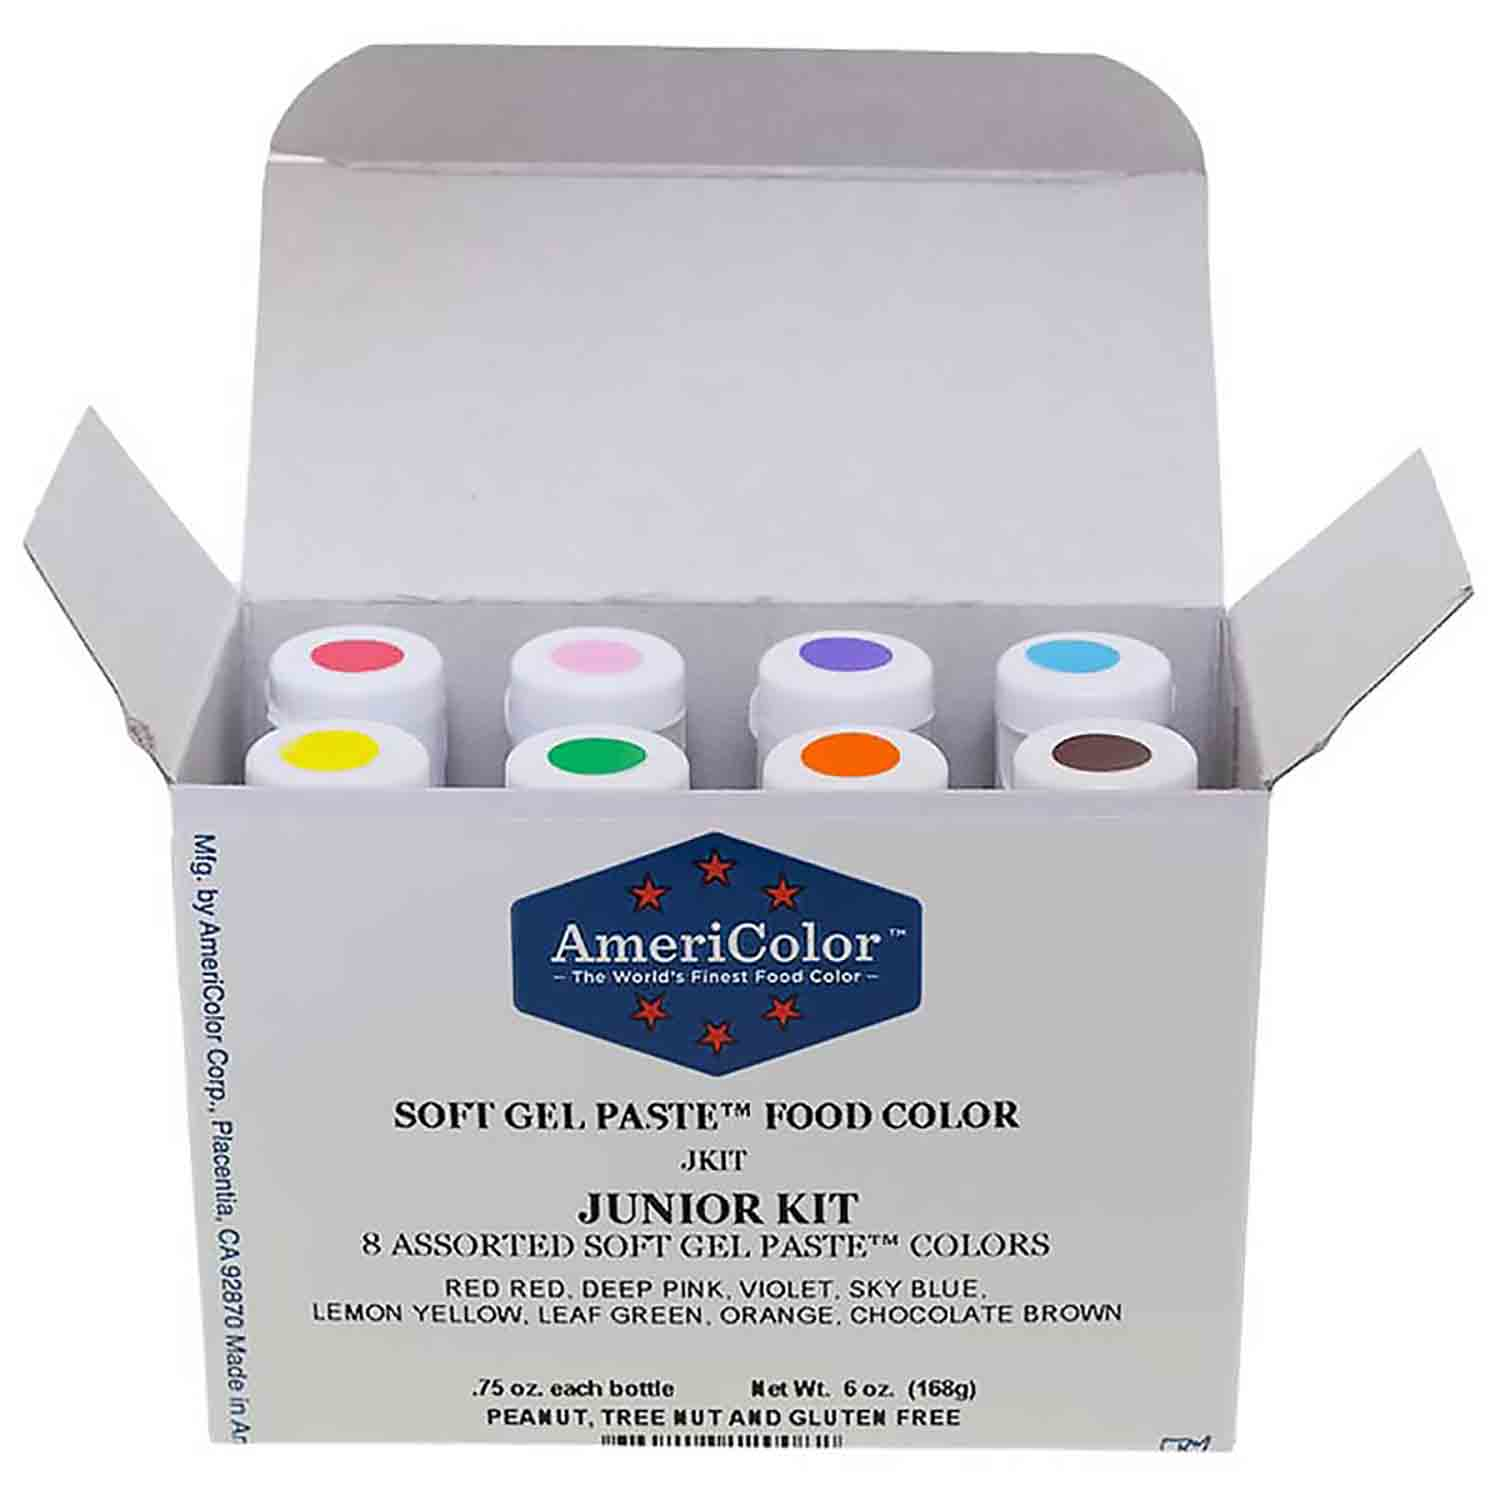 Junior Soft Gel Paste™ Food Color Kit